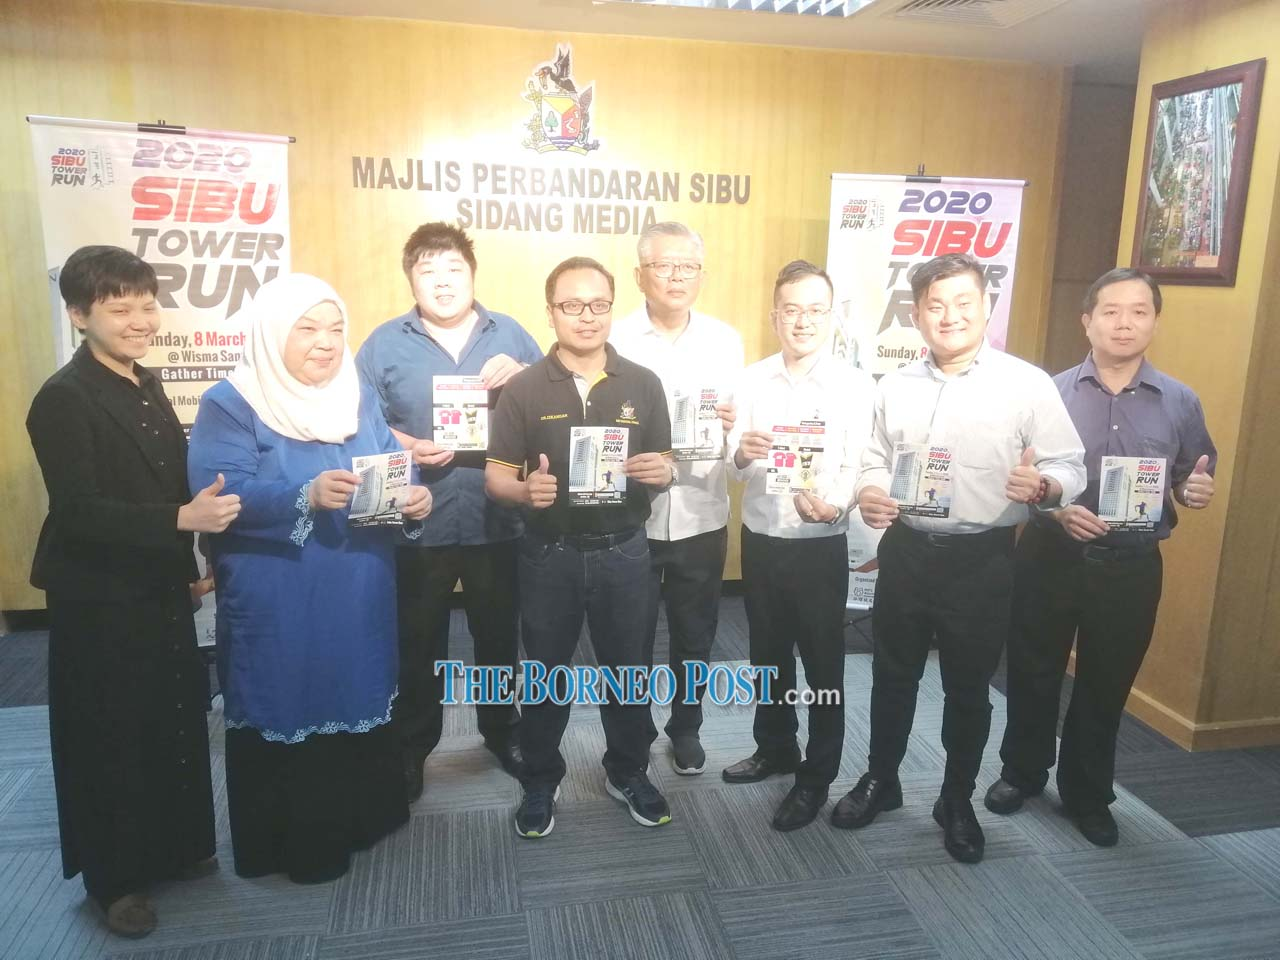 4th edition of Sibu Tower Run to be different – Coordinator